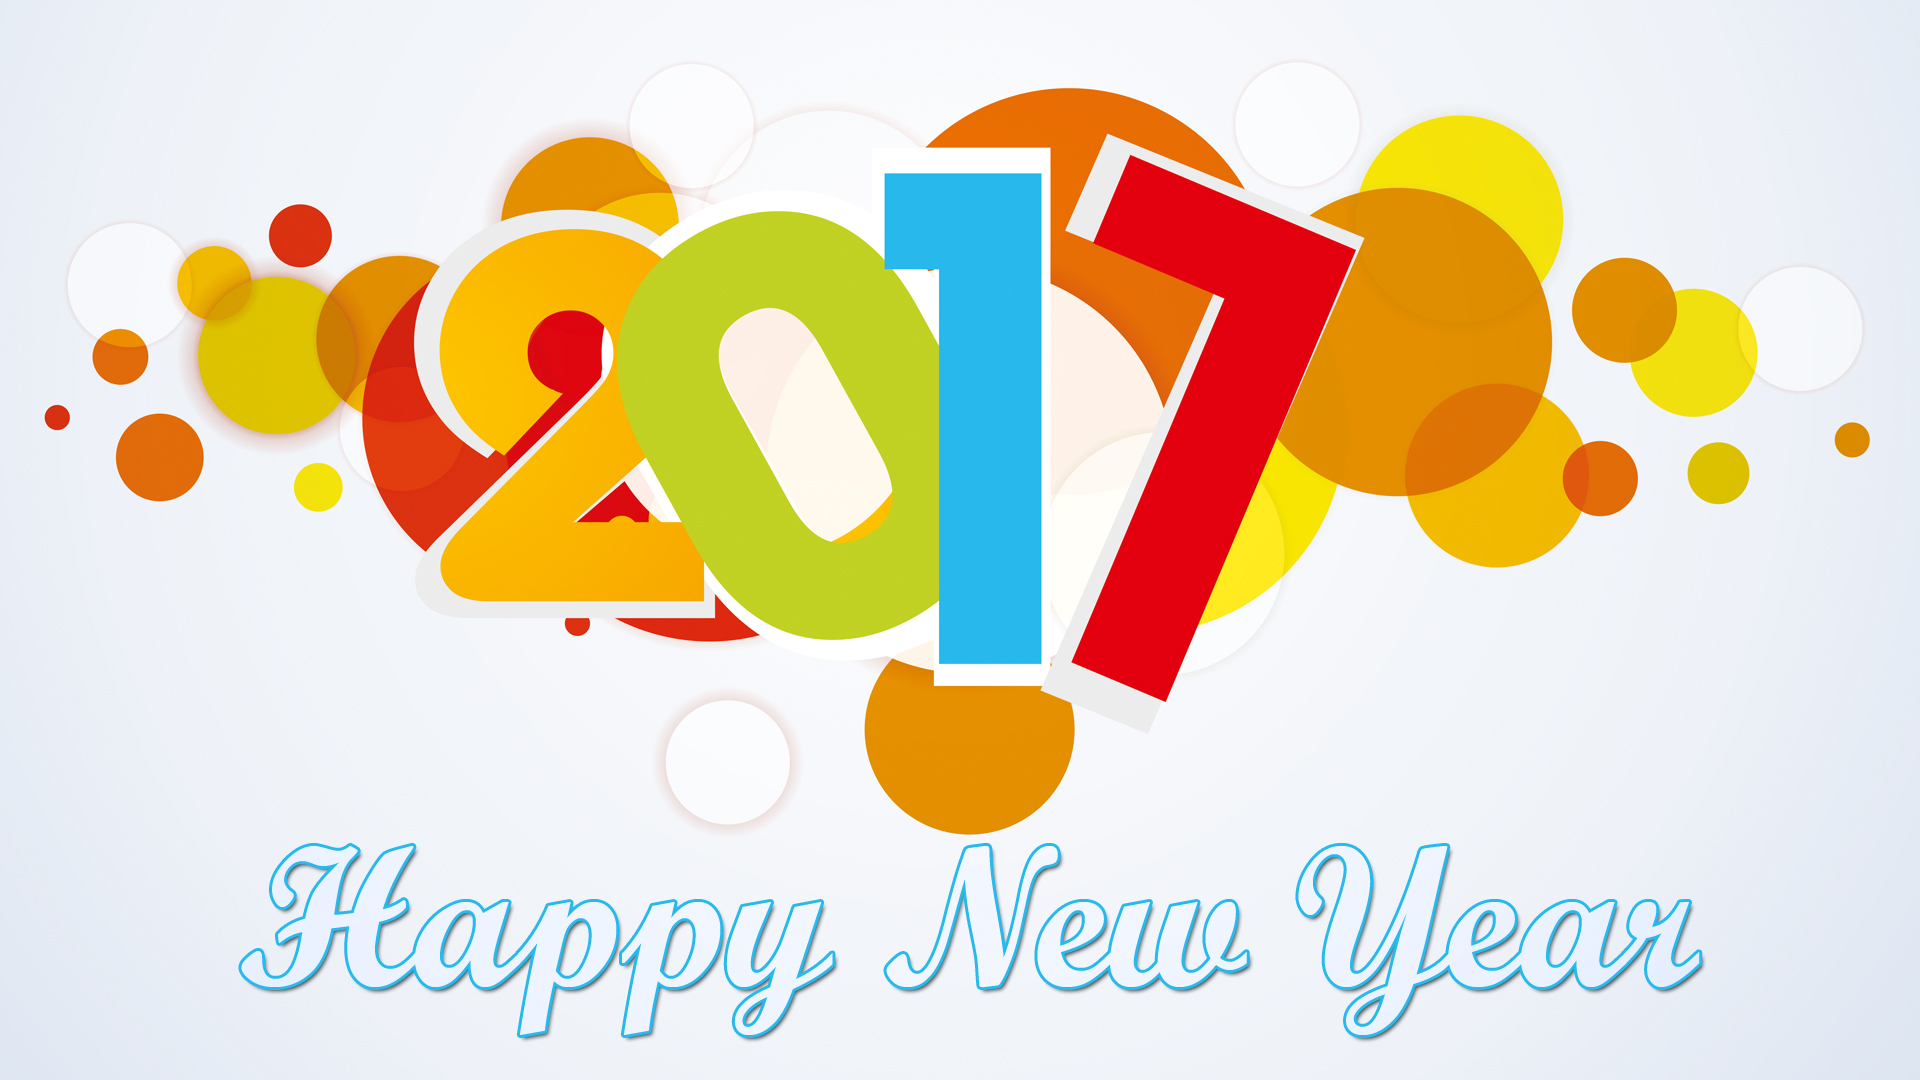 Wallpaper download new year - Happy New Year Wallpapers 2017 Hd Images Free Download